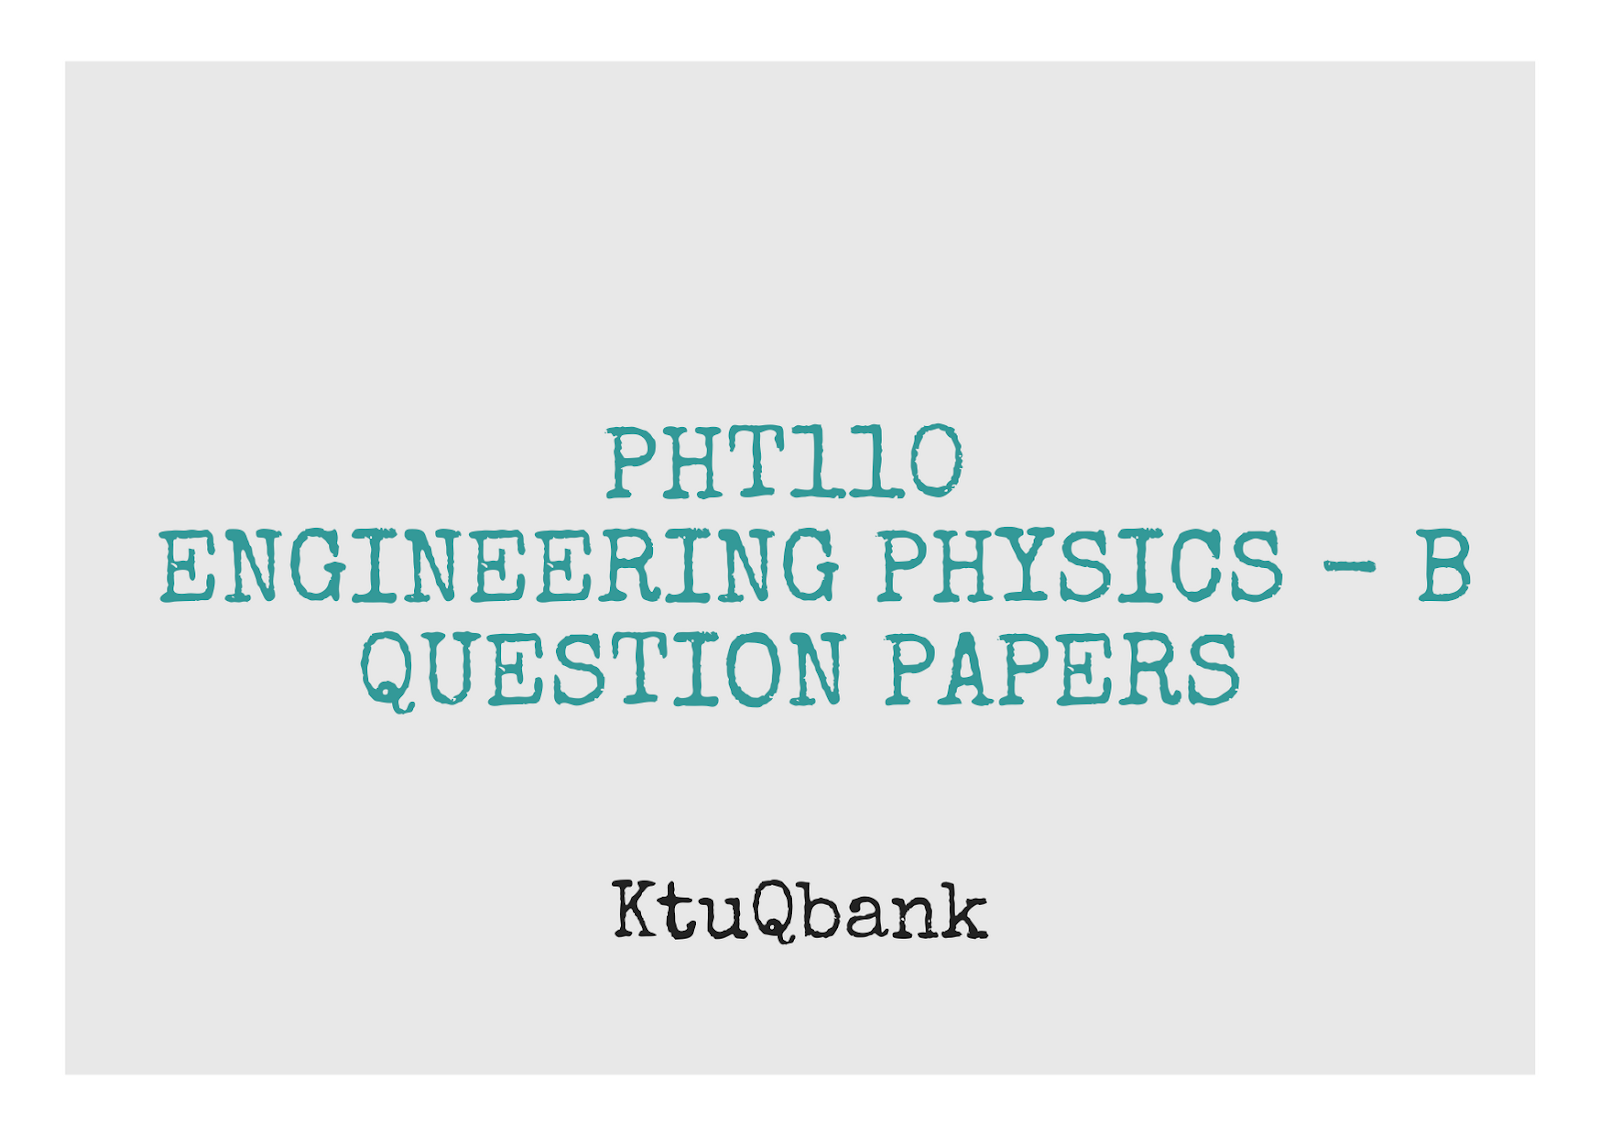 Engineering Physics B | PHT110 | Question Papers